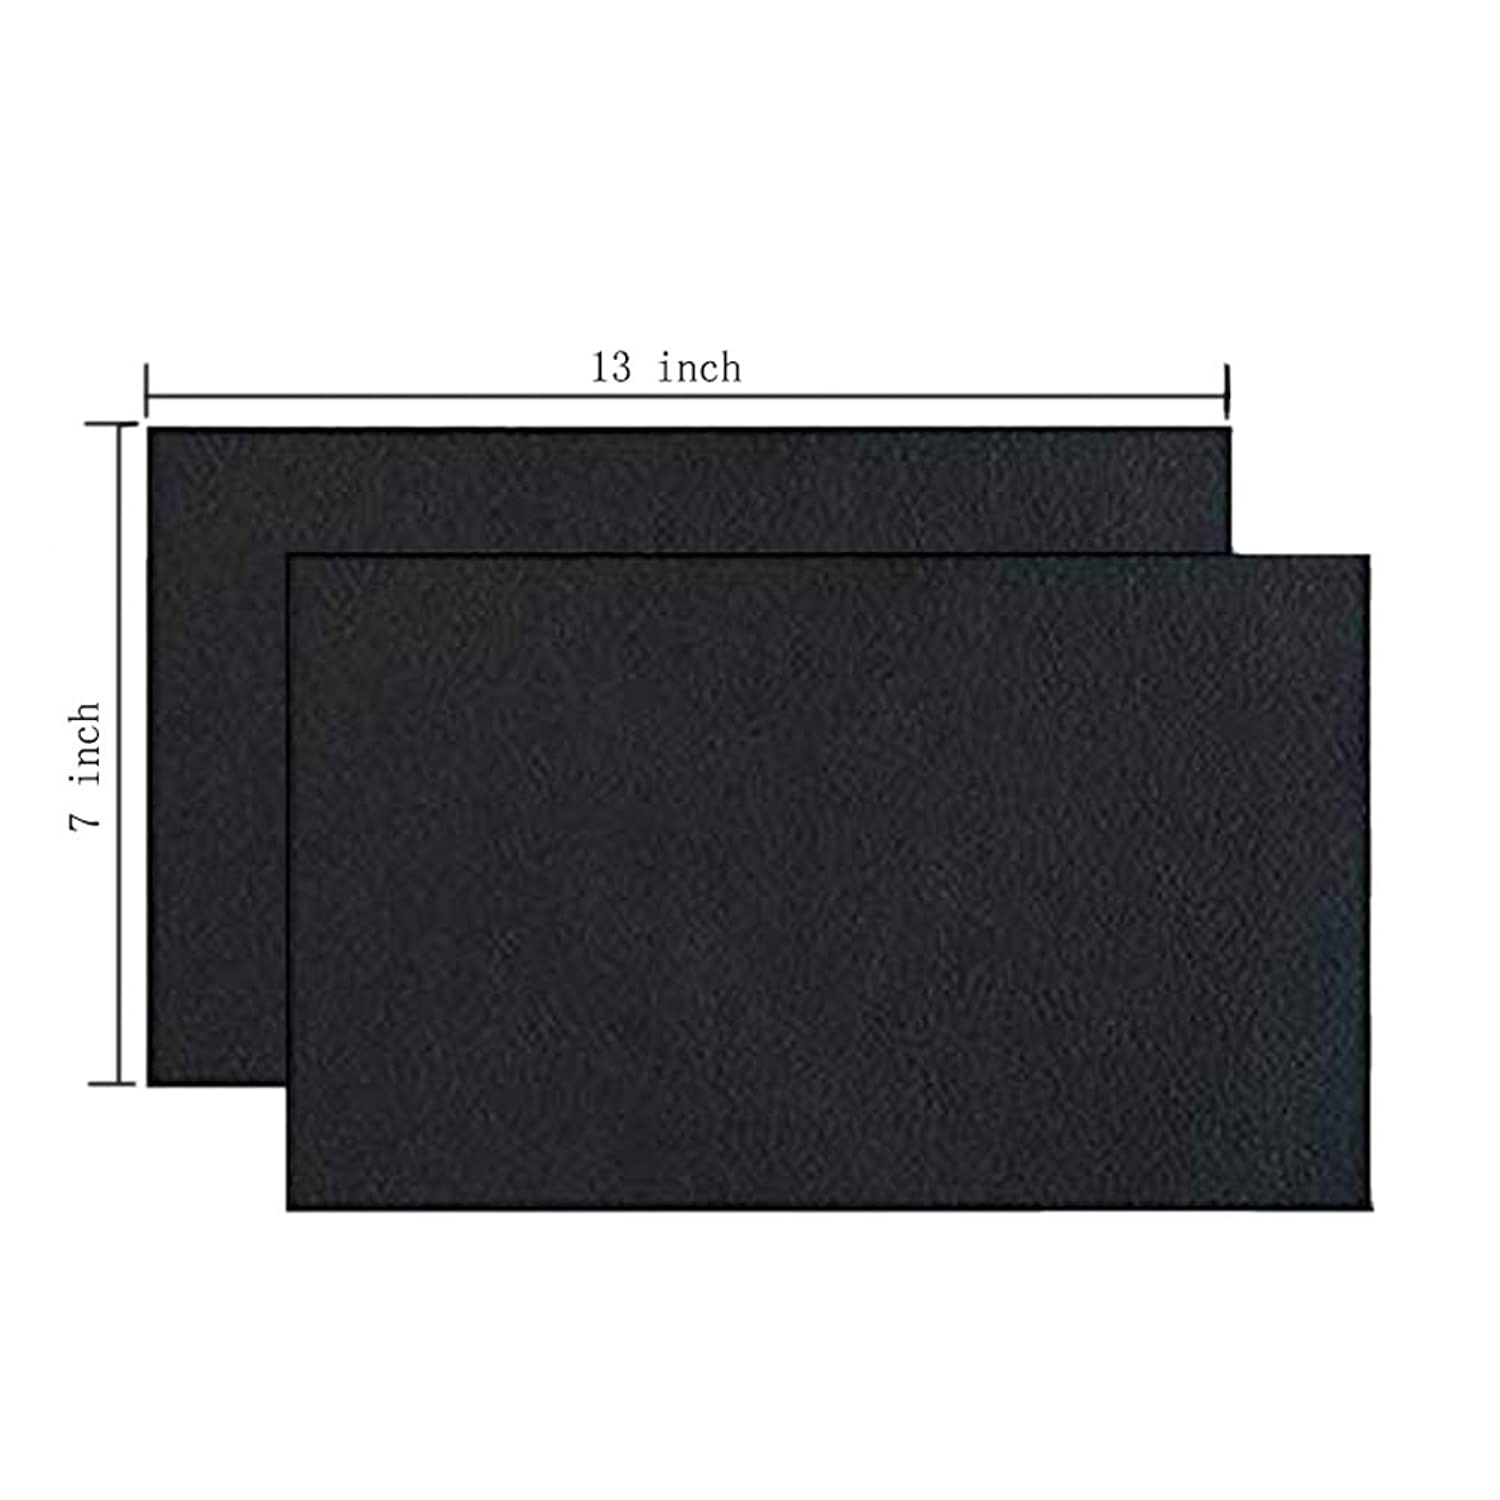 bettorrow 2 Pieces Leather Patch, Adhesive Backing Leather seat Patch for Repair Sofa, Car Seat, Jackets, Handbag, 13 by 7 Inch, Black